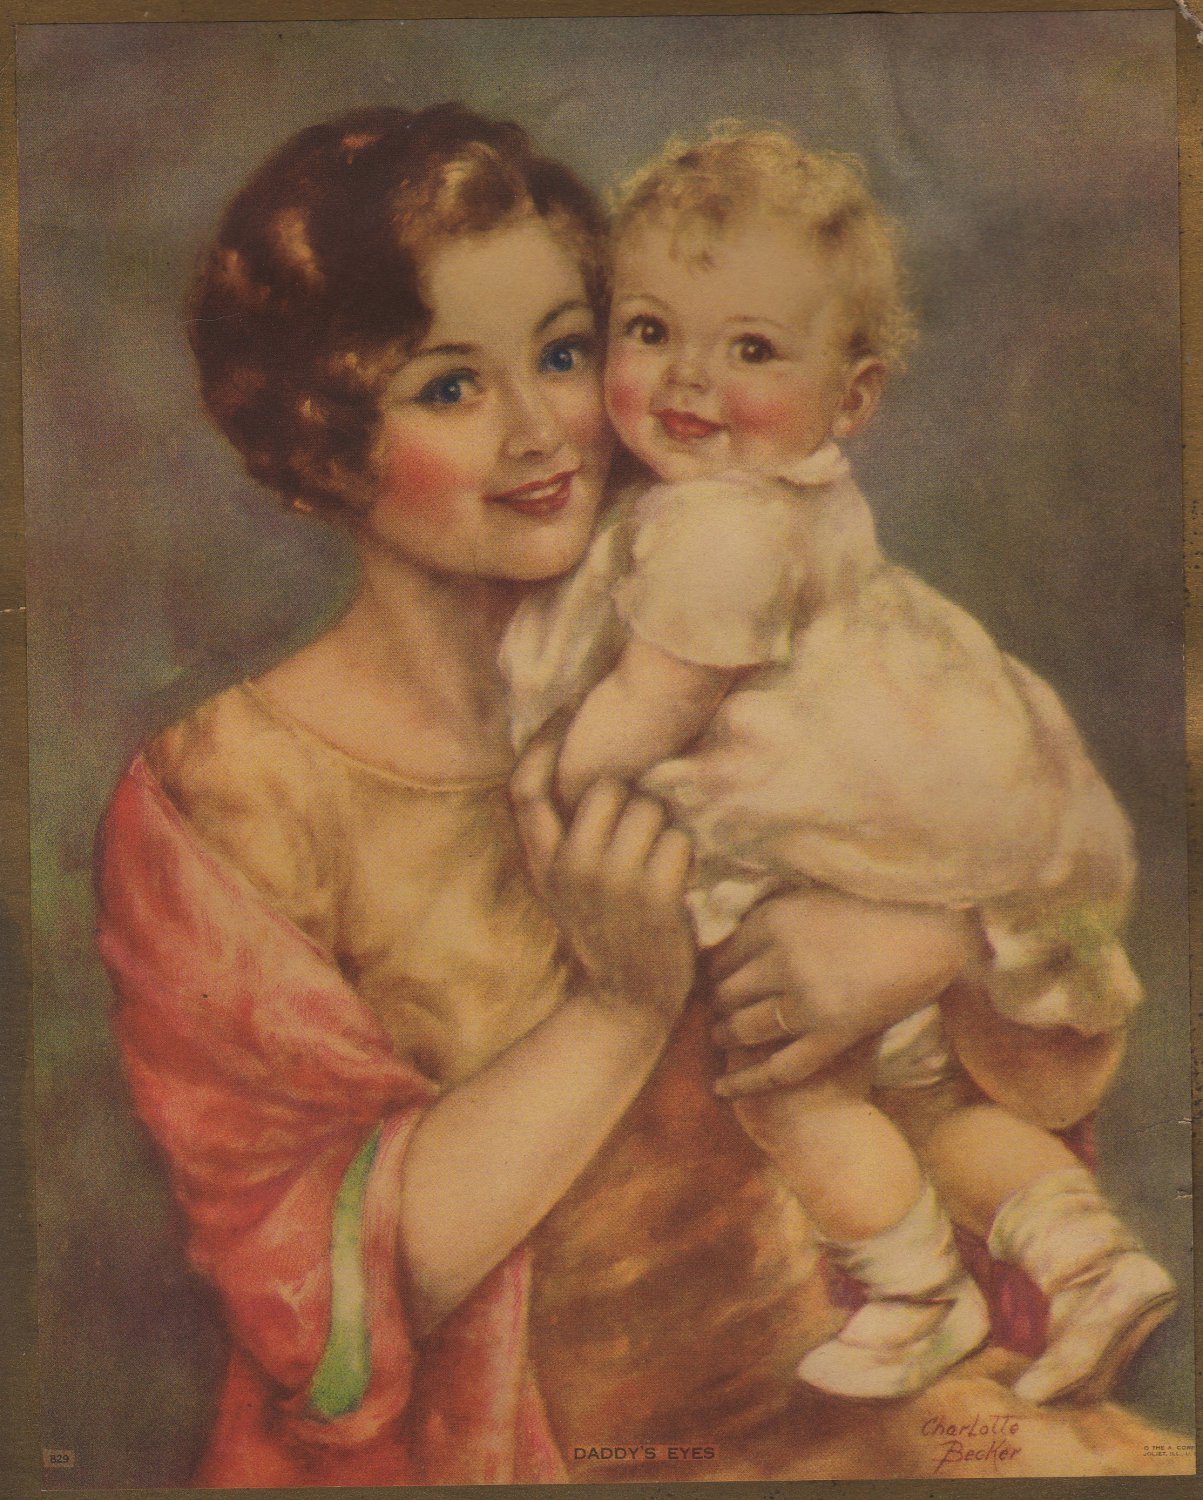 Daddy's Eyes, Charlotte Becker Color Print of Mother and Child c.1915